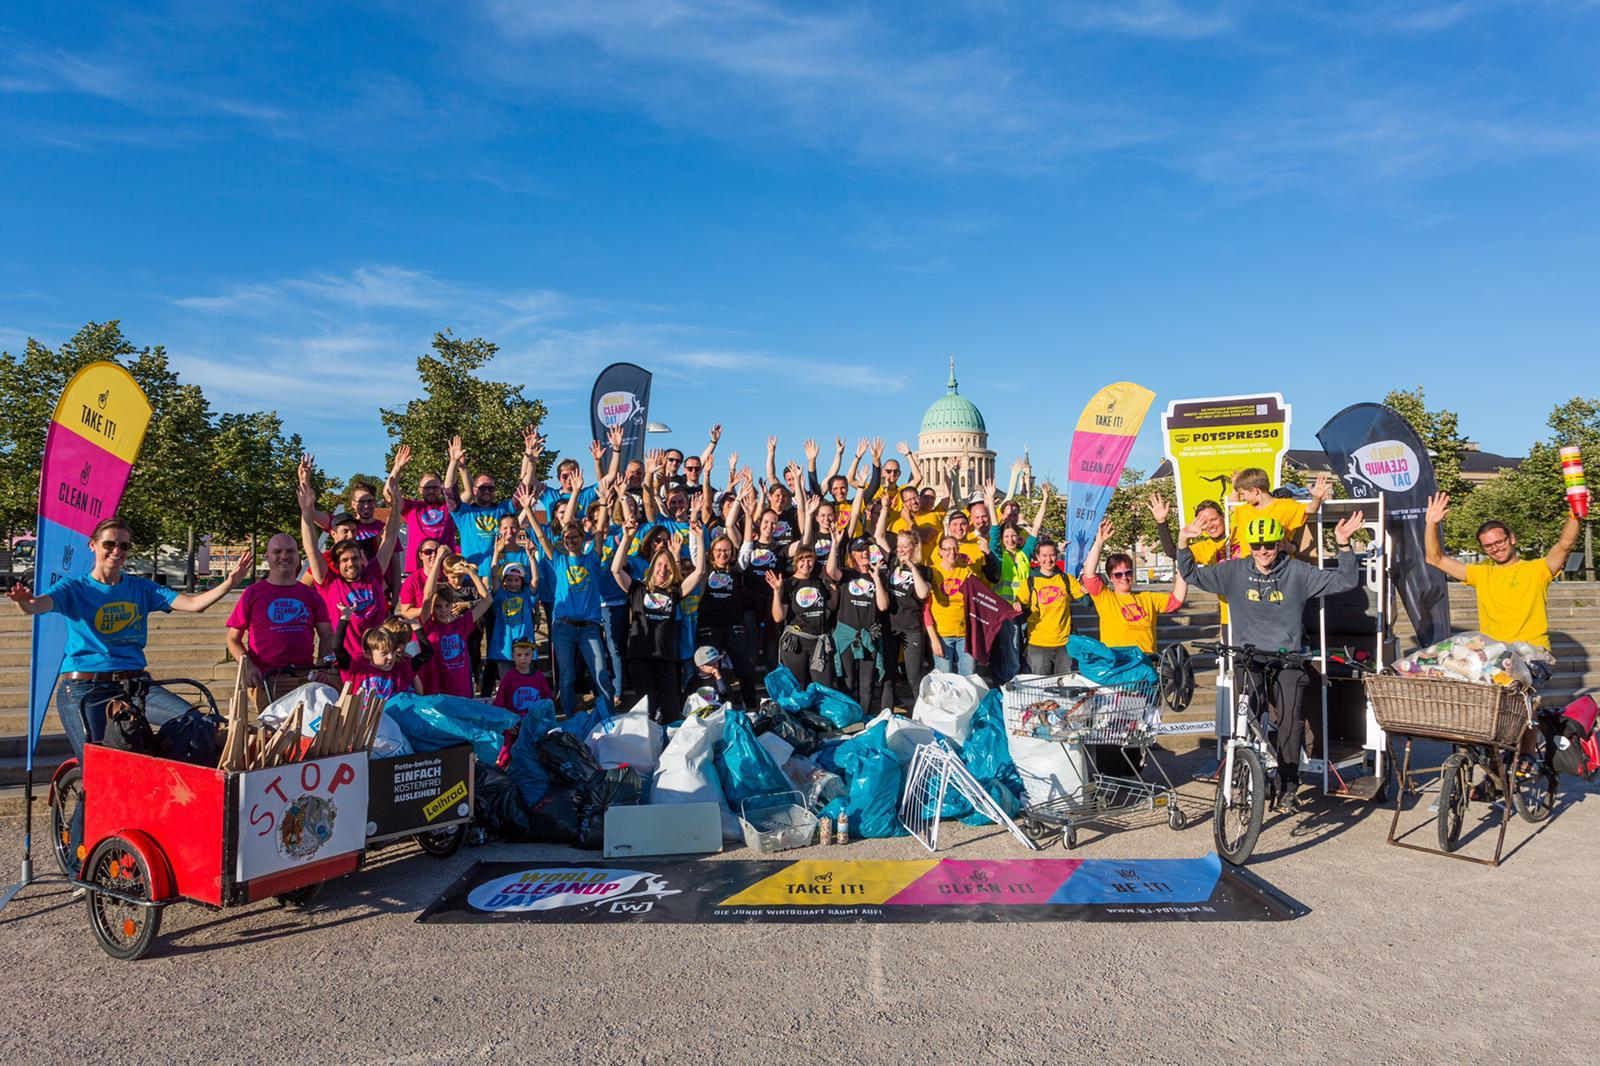 World Cleanup Day 2020 - Potsdam macht sauber (Brandenburg)